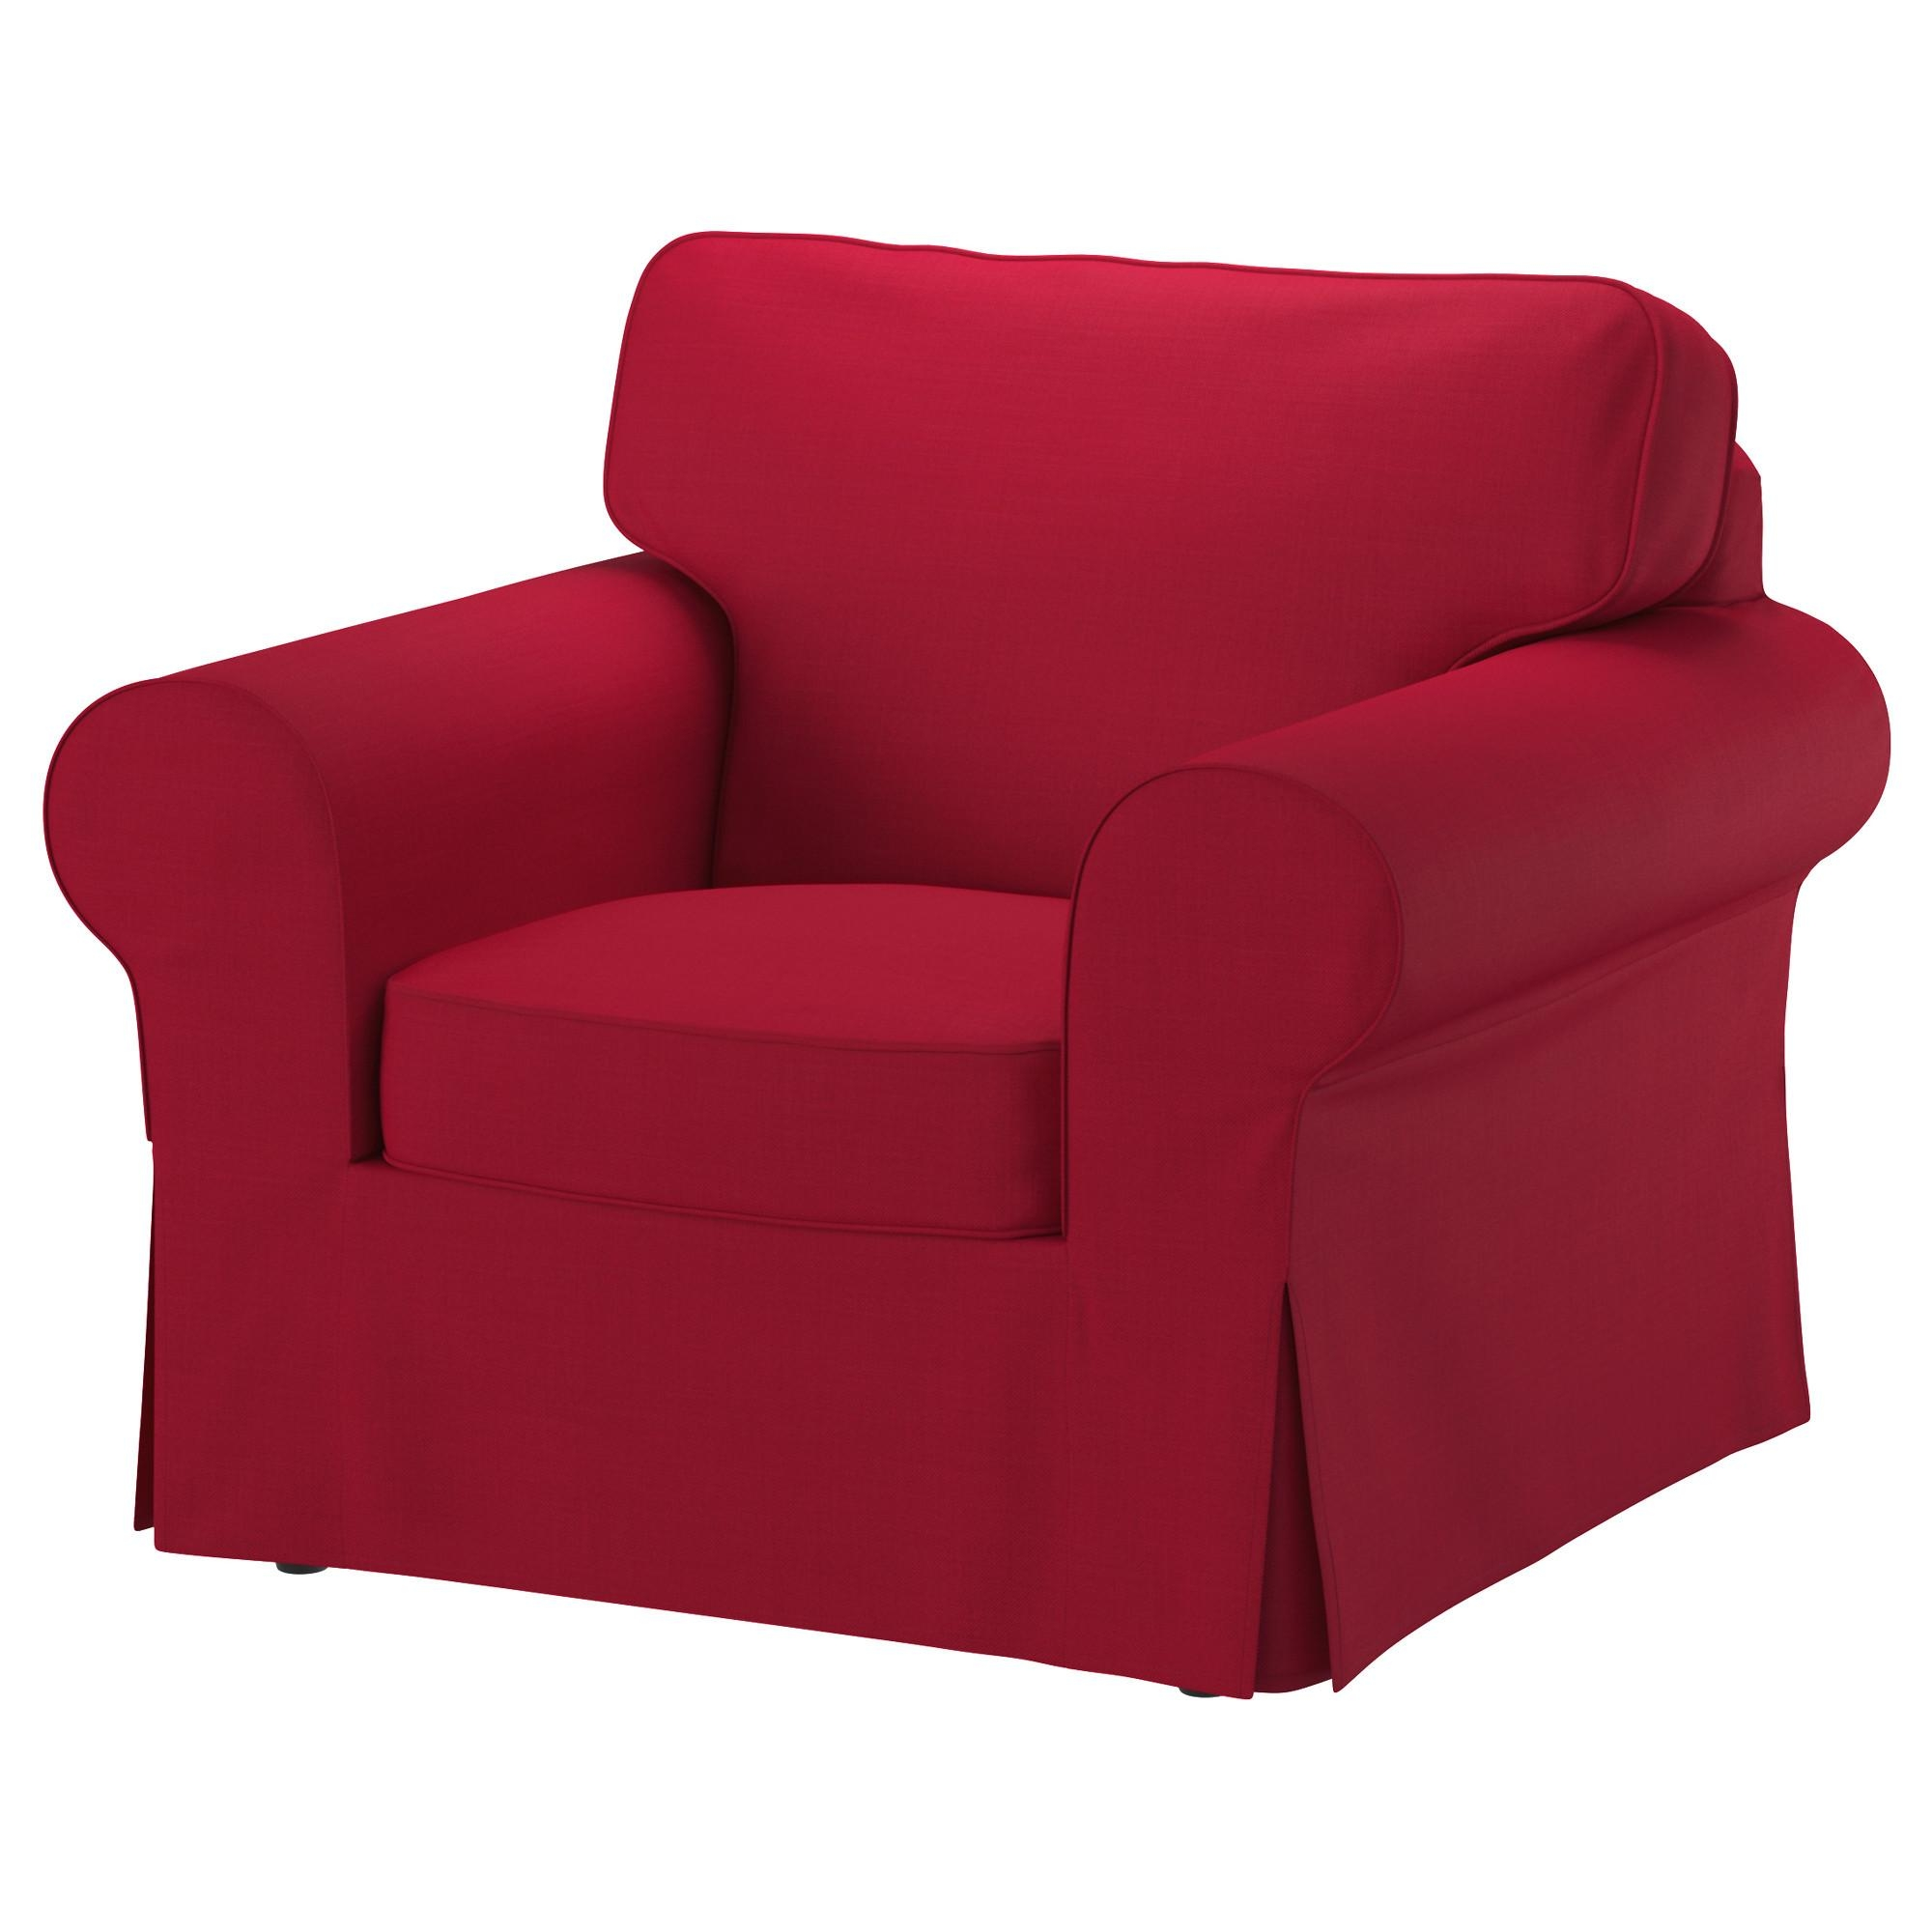 Furniture: Give Your Sofa Fresh New Look With Ikea Ektorp Chair Regarding Sofa Chairs Ikea (Image 8 of 20)